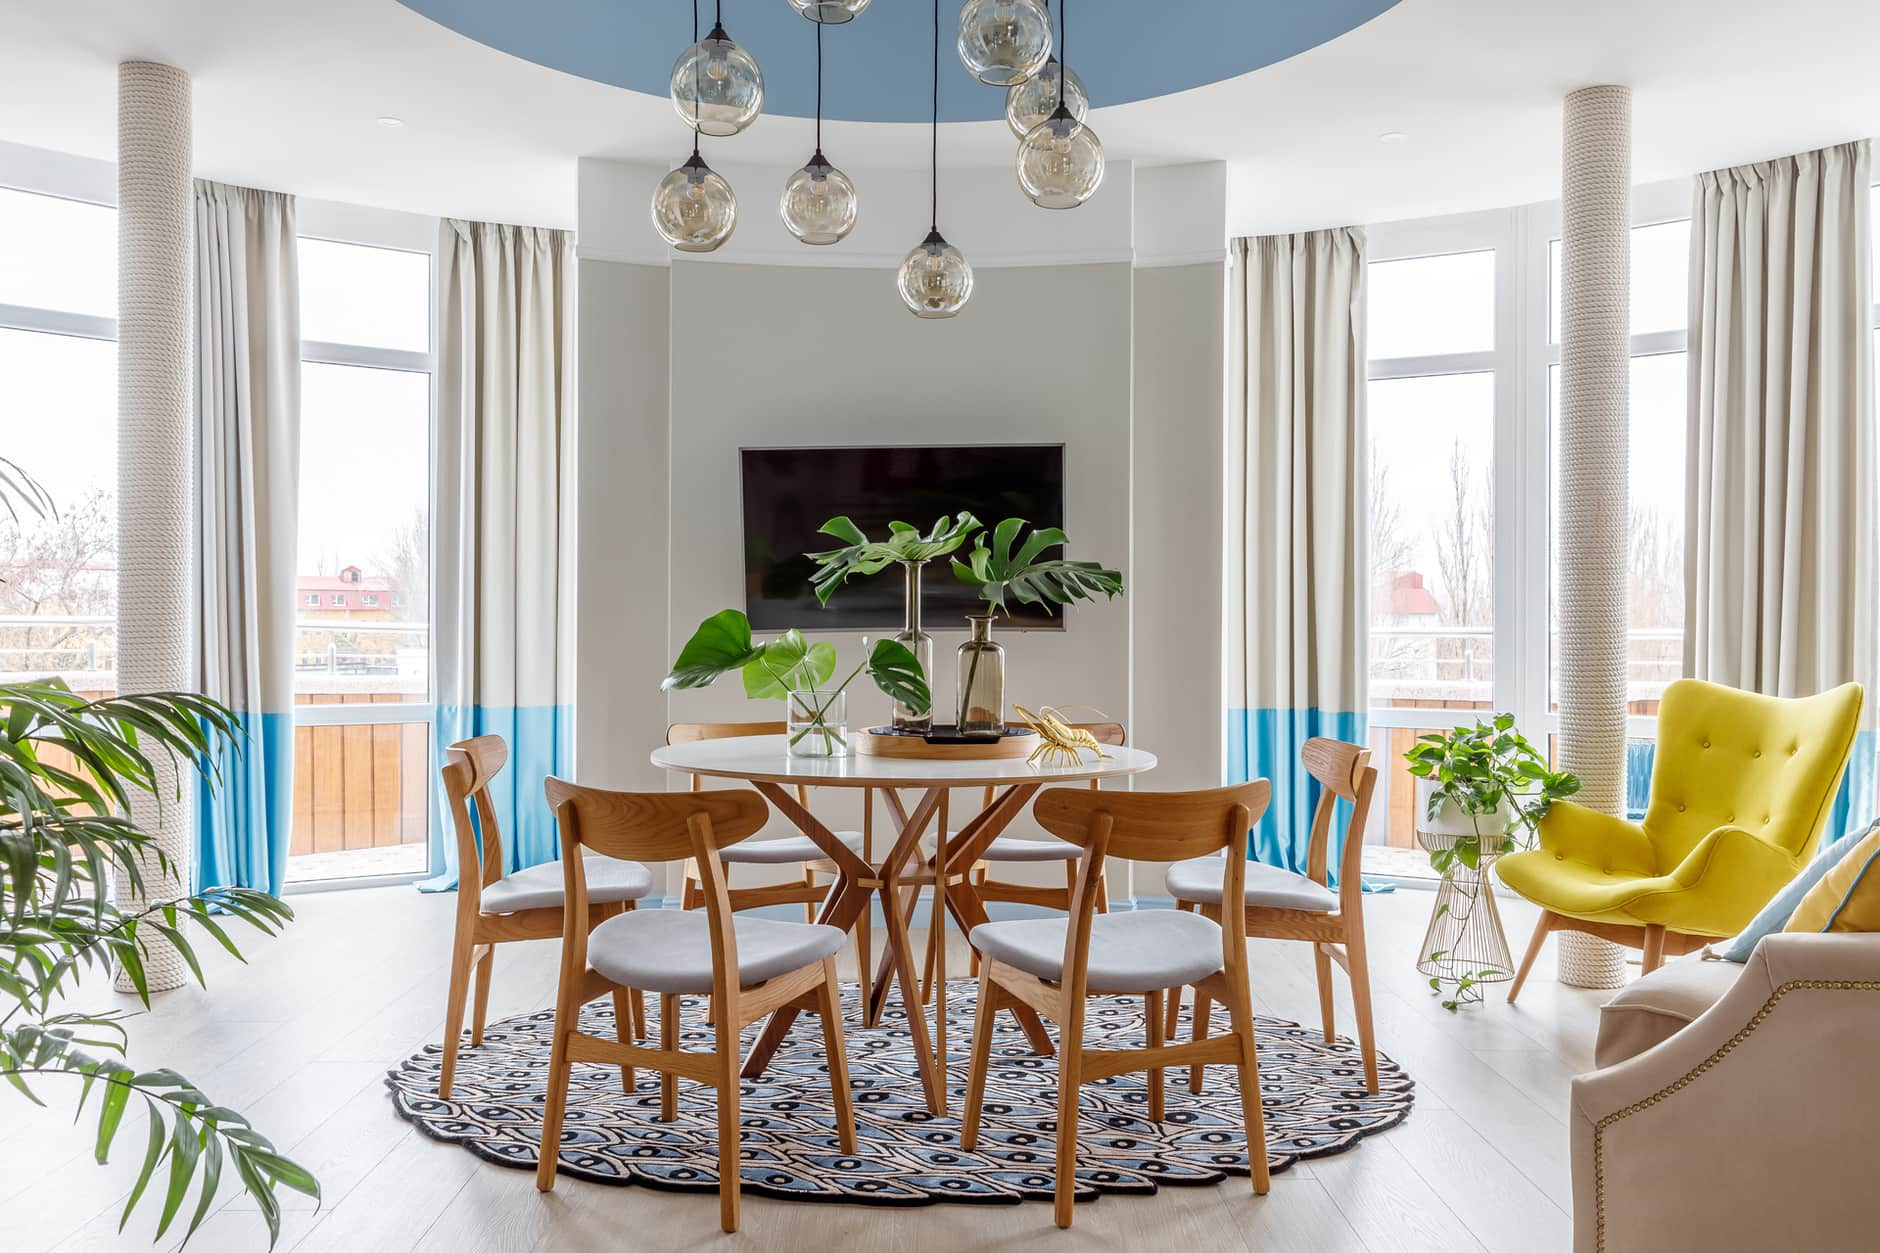 Round dining zone with wooden furniture for fresh and prominent Mediterranean room